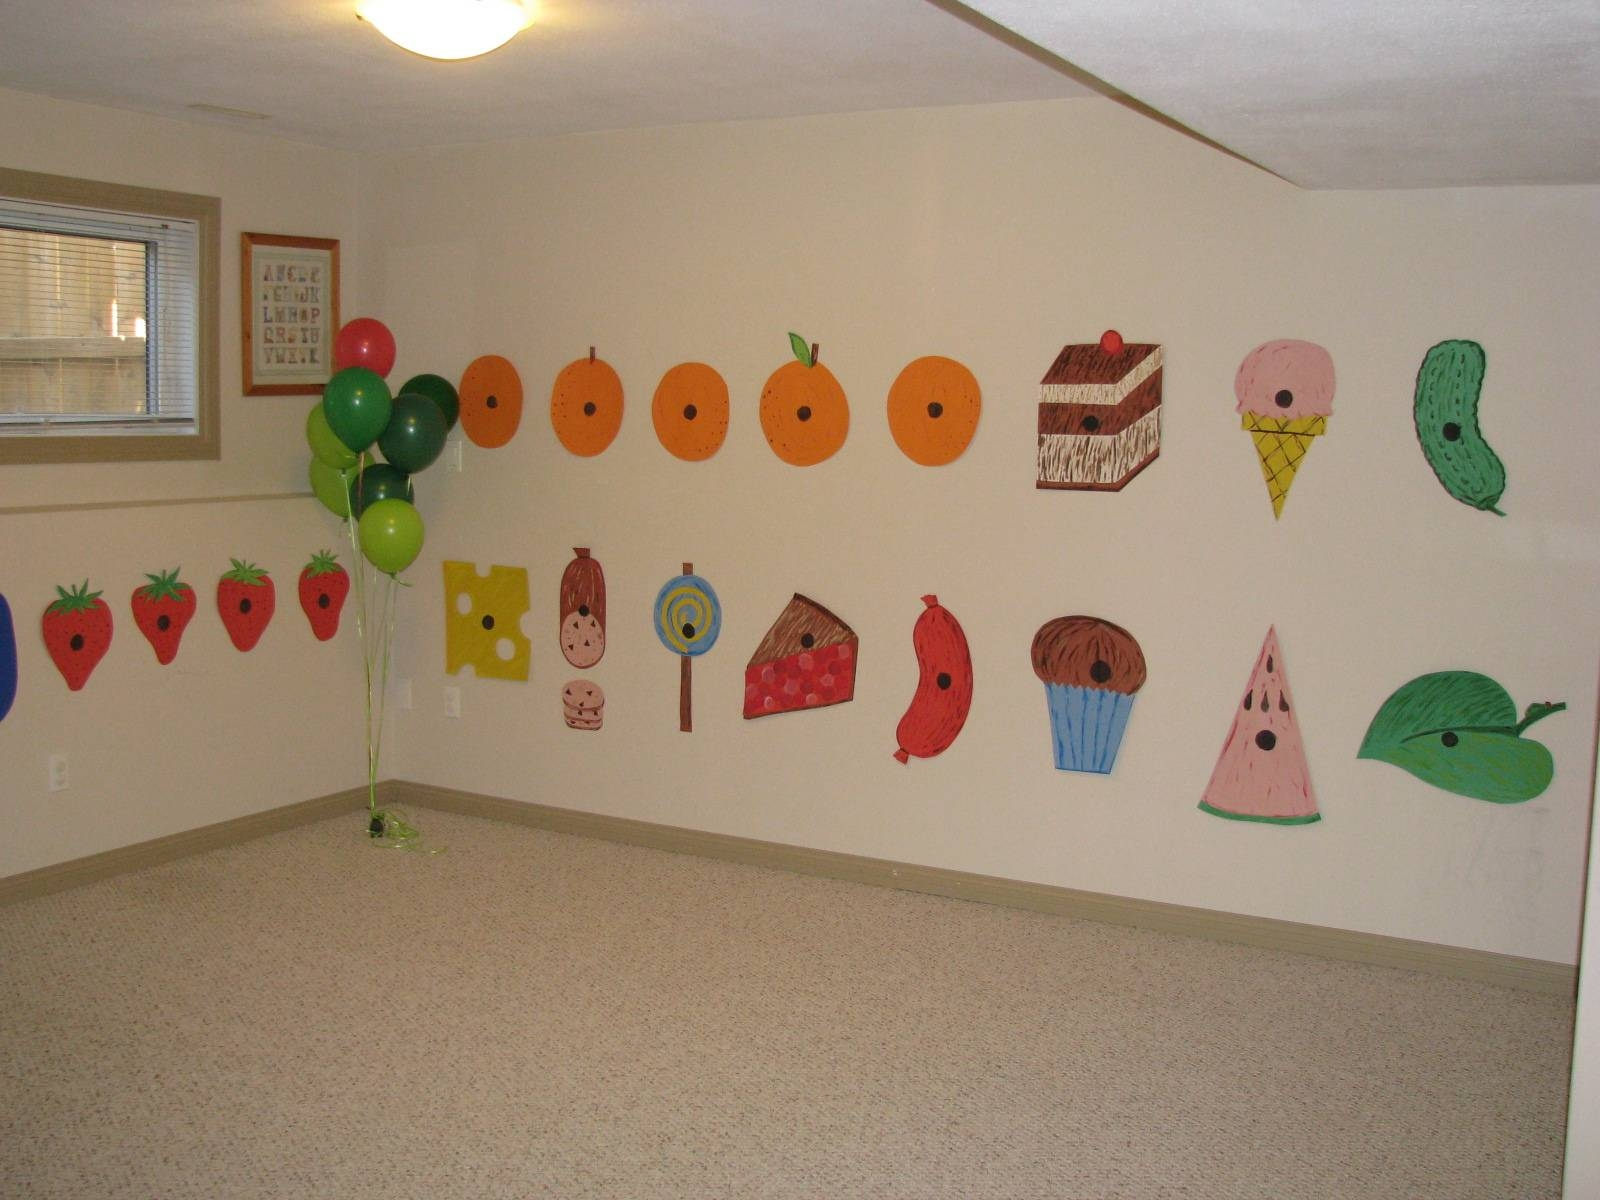 Making Merry Memories: The Very Hungry Caterpillar Party Intended For Current Very Hungry Caterpillar Wall Art (View 10 of 20)